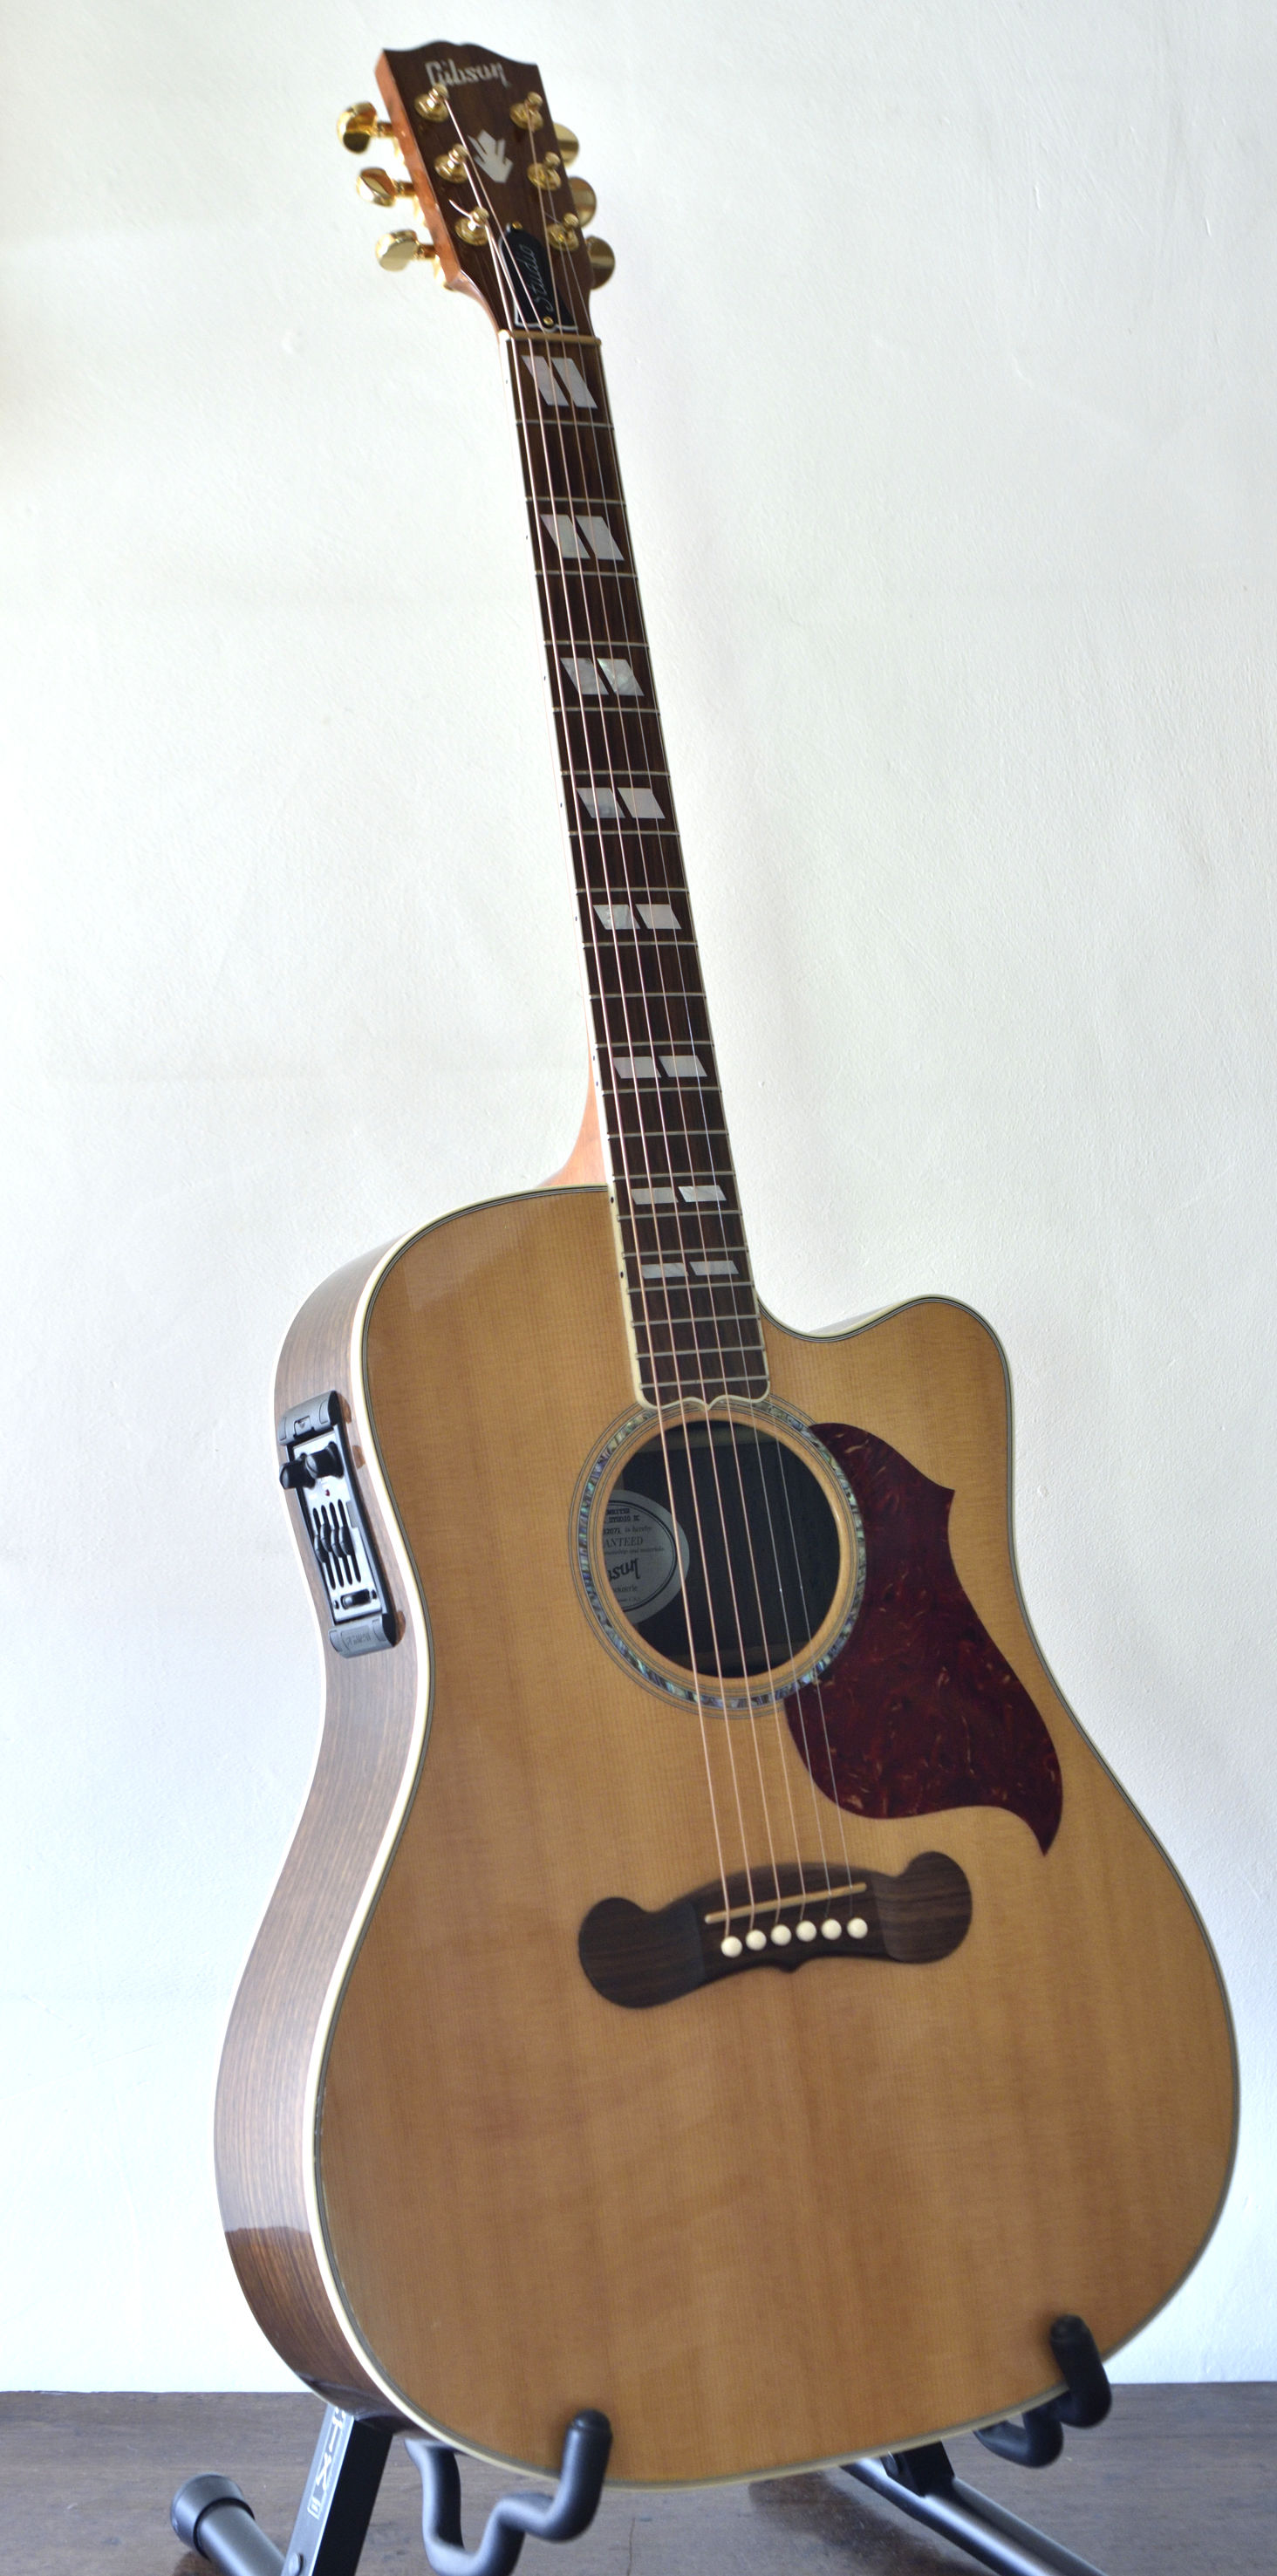 Gibson songwriter Special Acoustic Electric guitar ebony